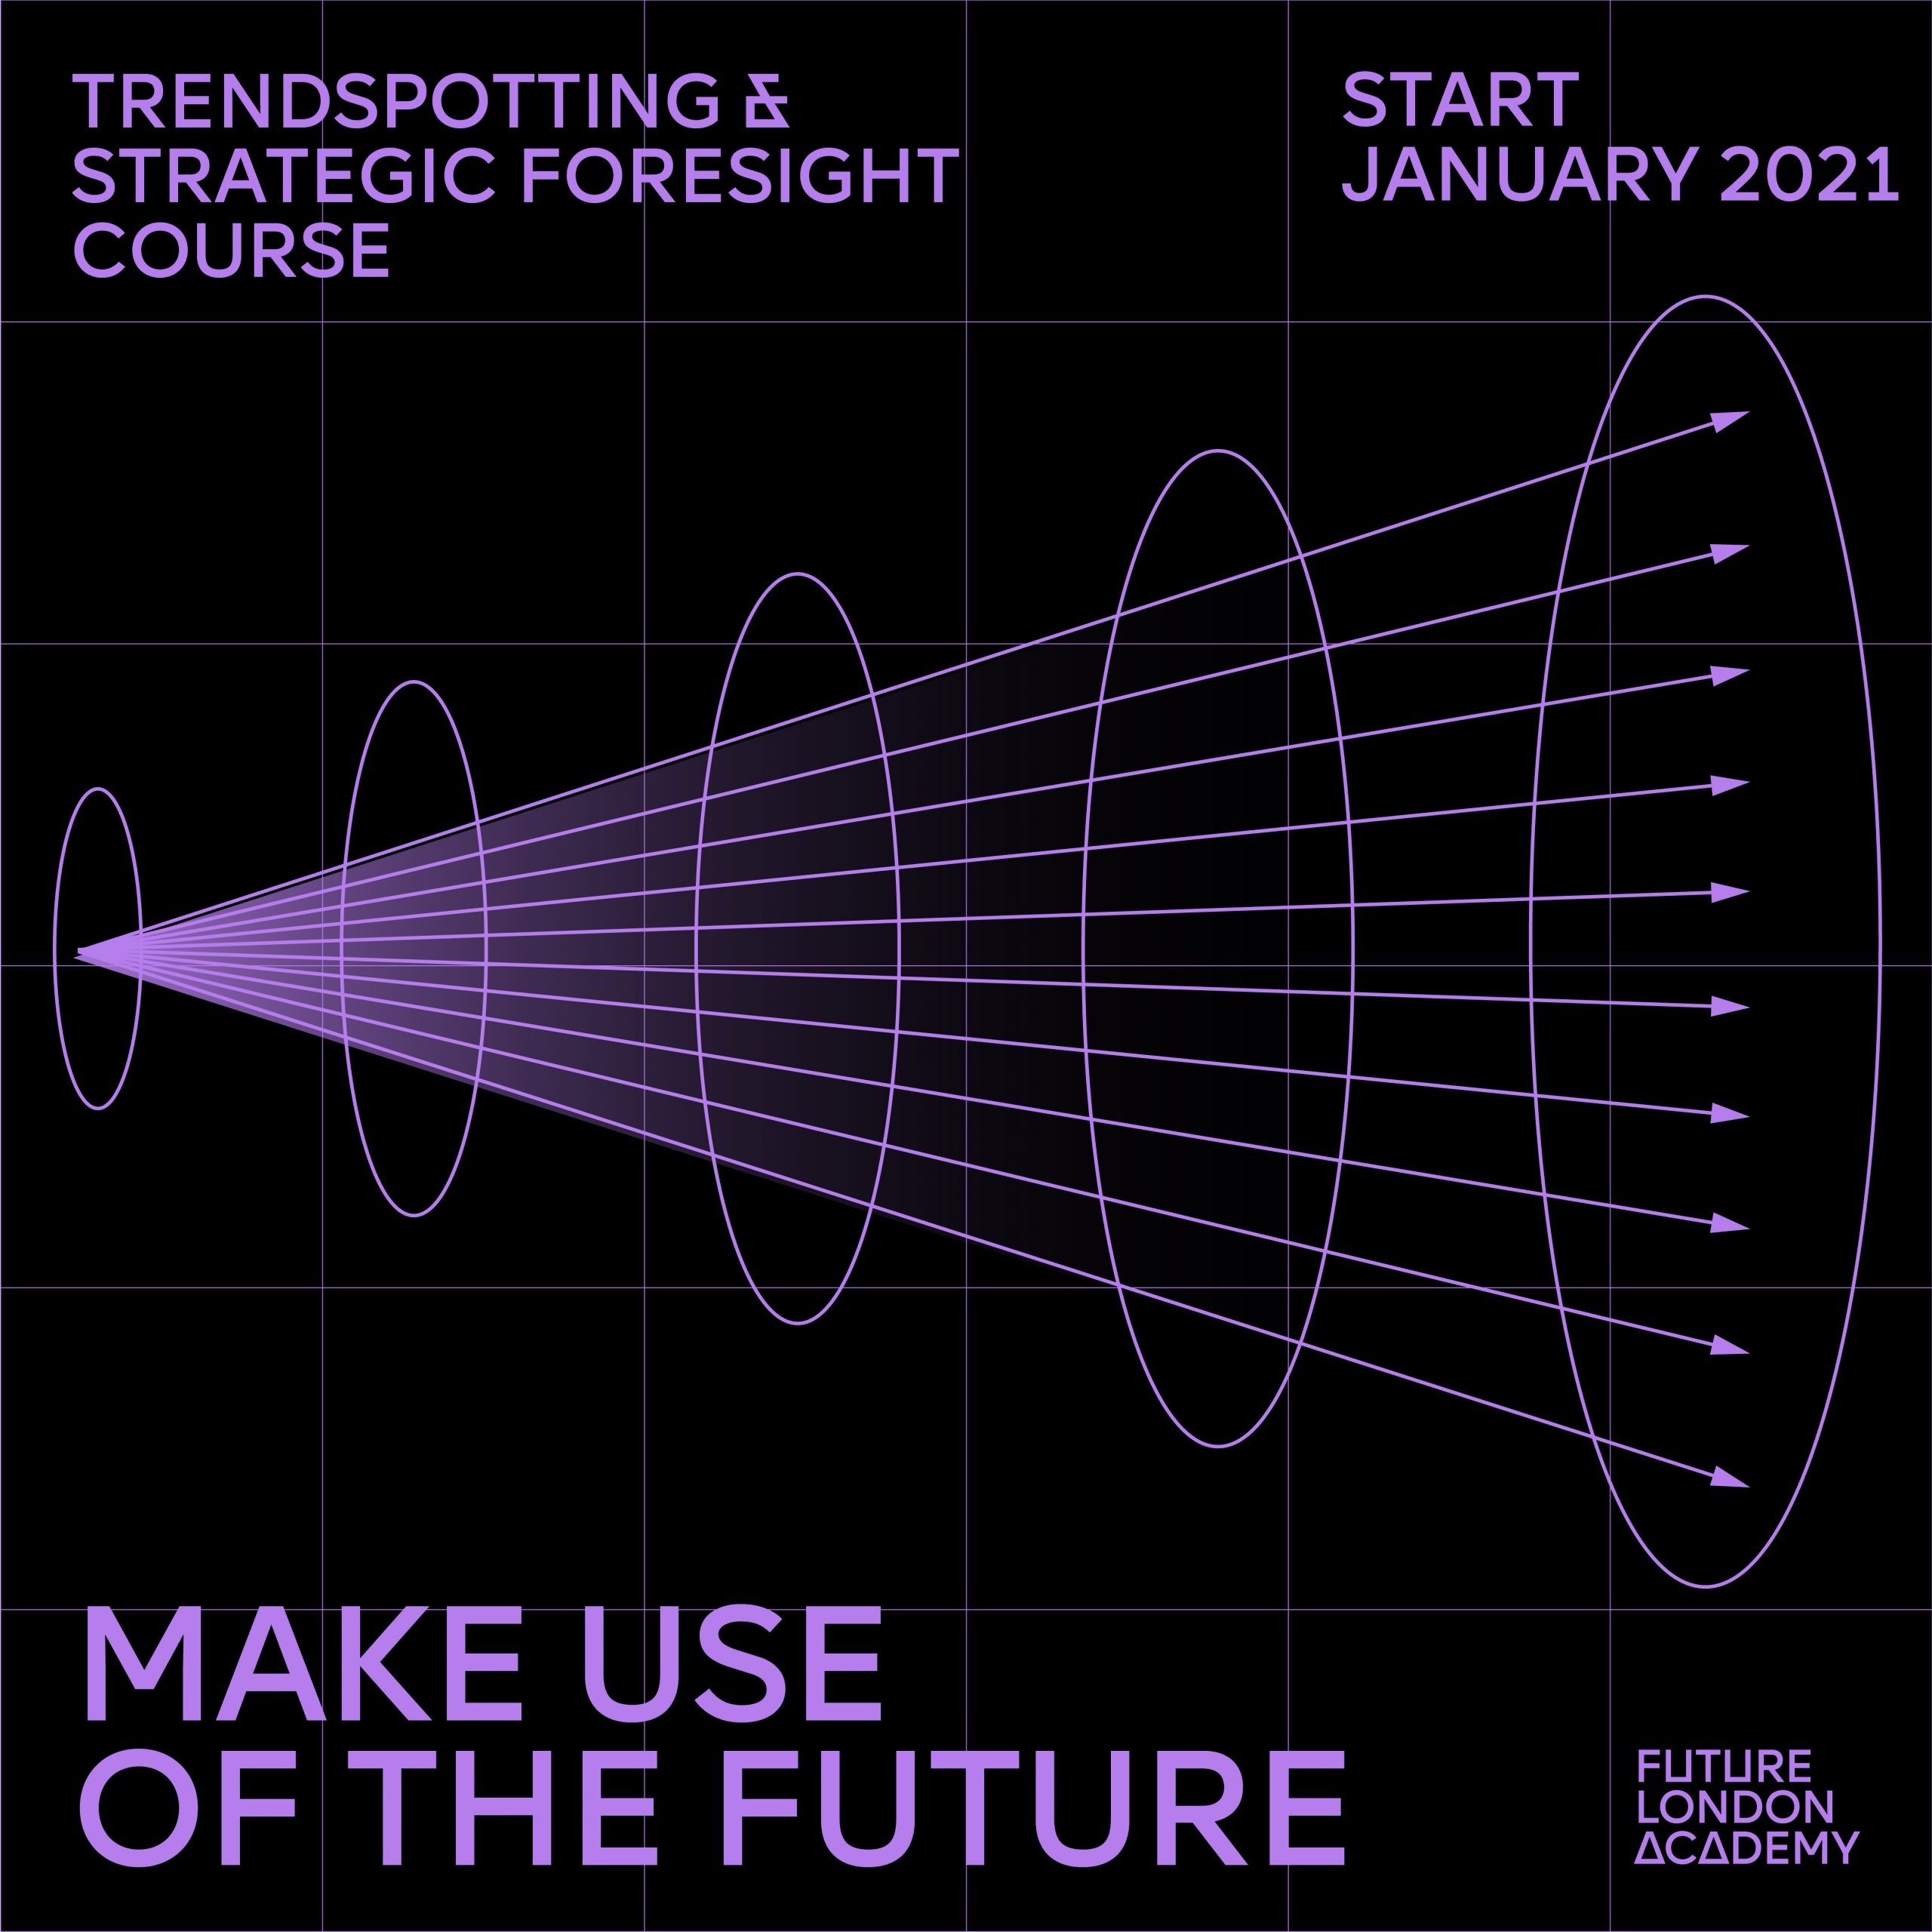 Trendspotting&Strategic Foresight_resize_Instagram_1080x1080 copy.jpg